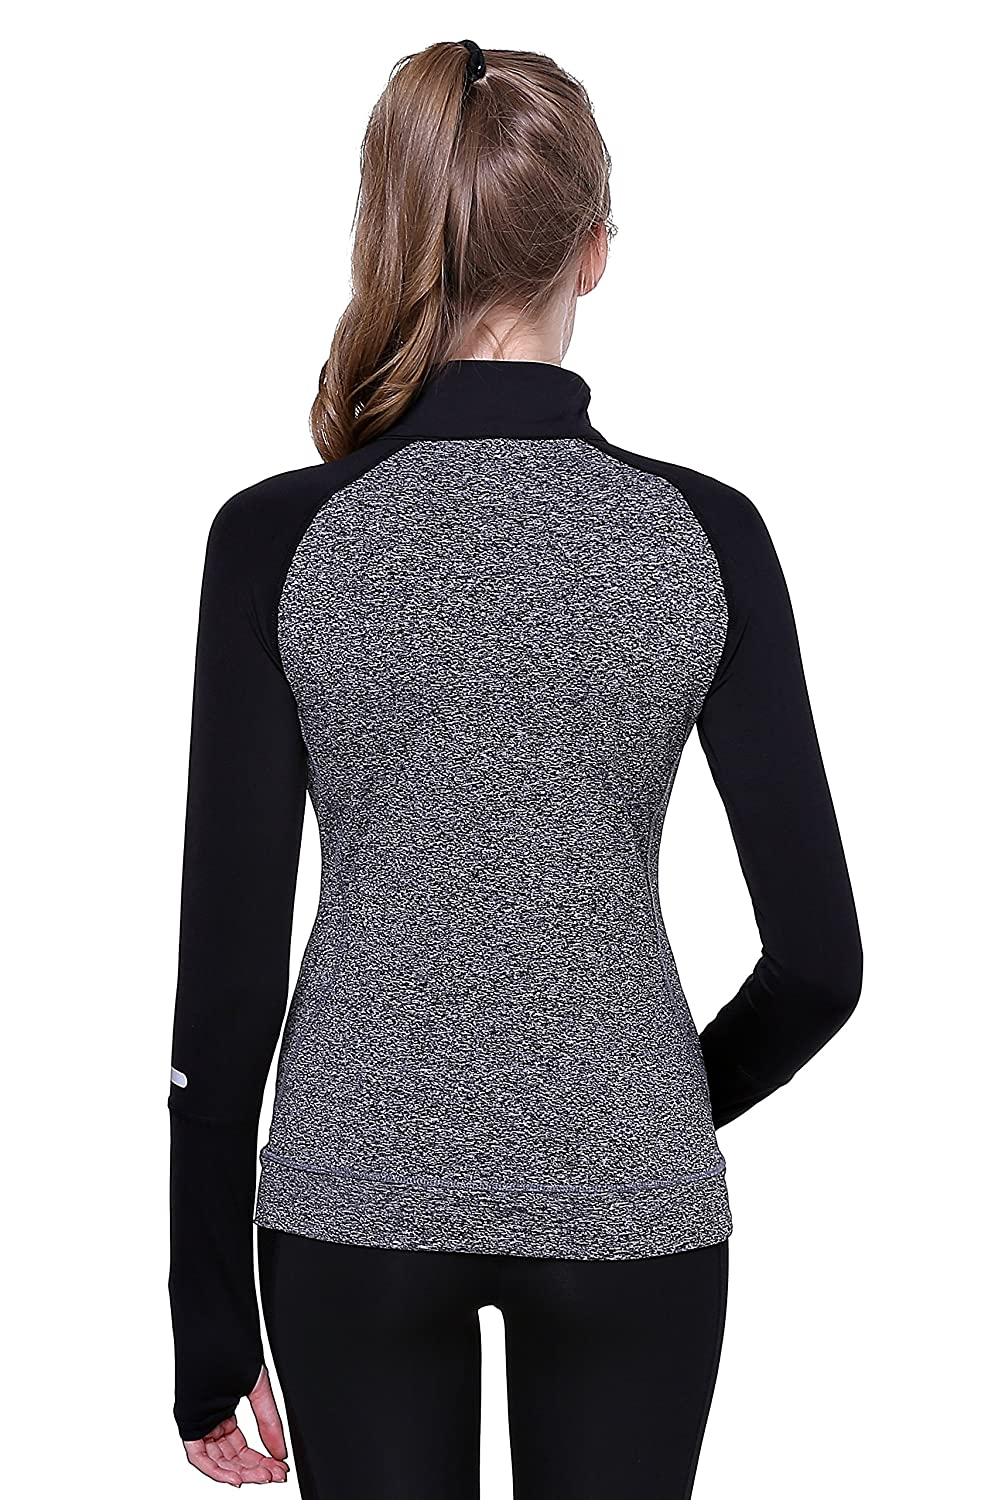 Cityoung Womens Yoga Long Sleeves Half Zip Sweatshirt Girl Athletic Workout Running Jacket